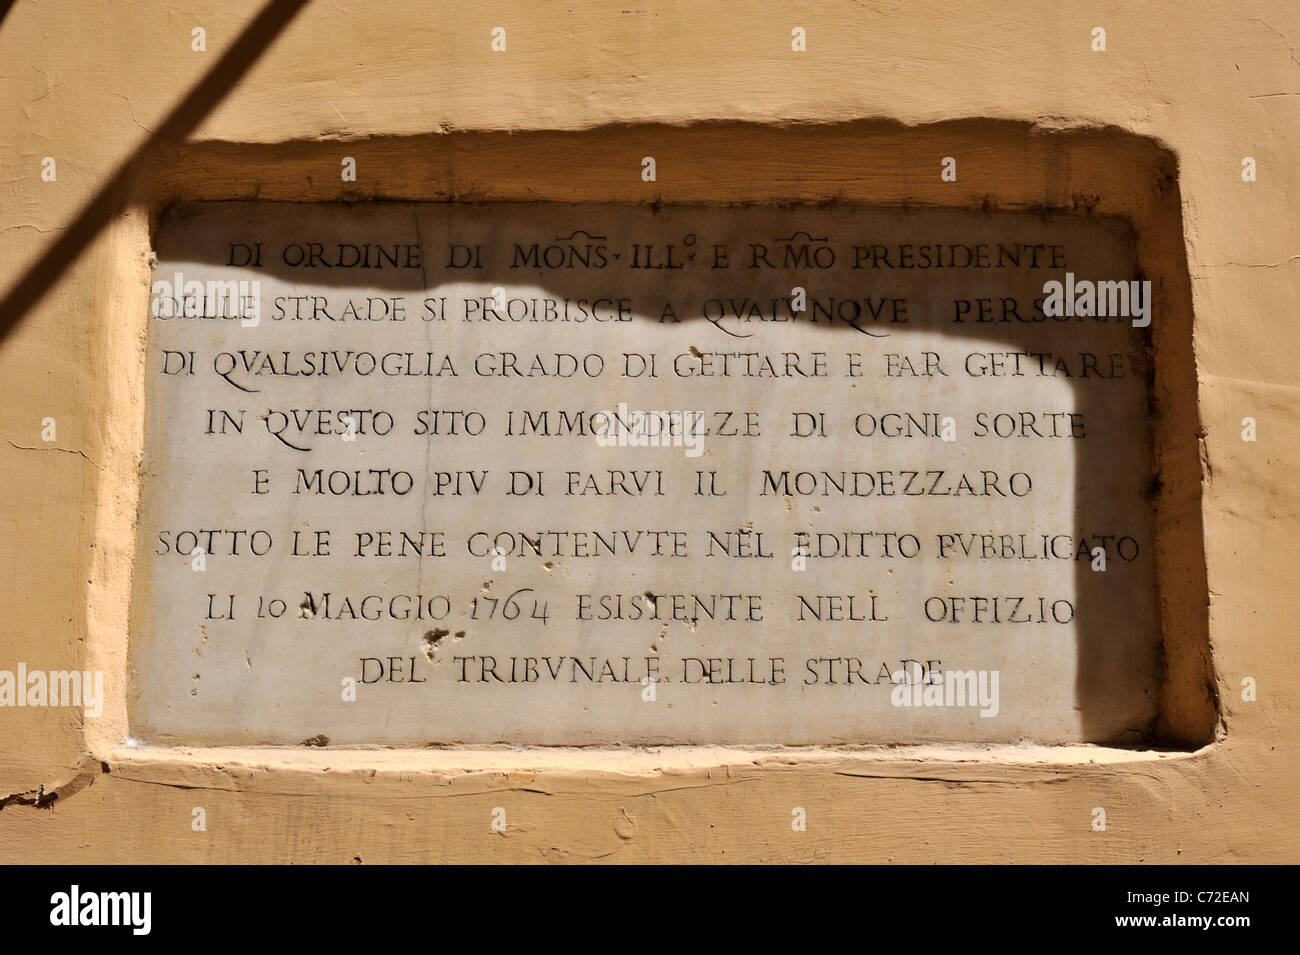 italy, rome, ancient no littering sign, 18th century - Stock Image